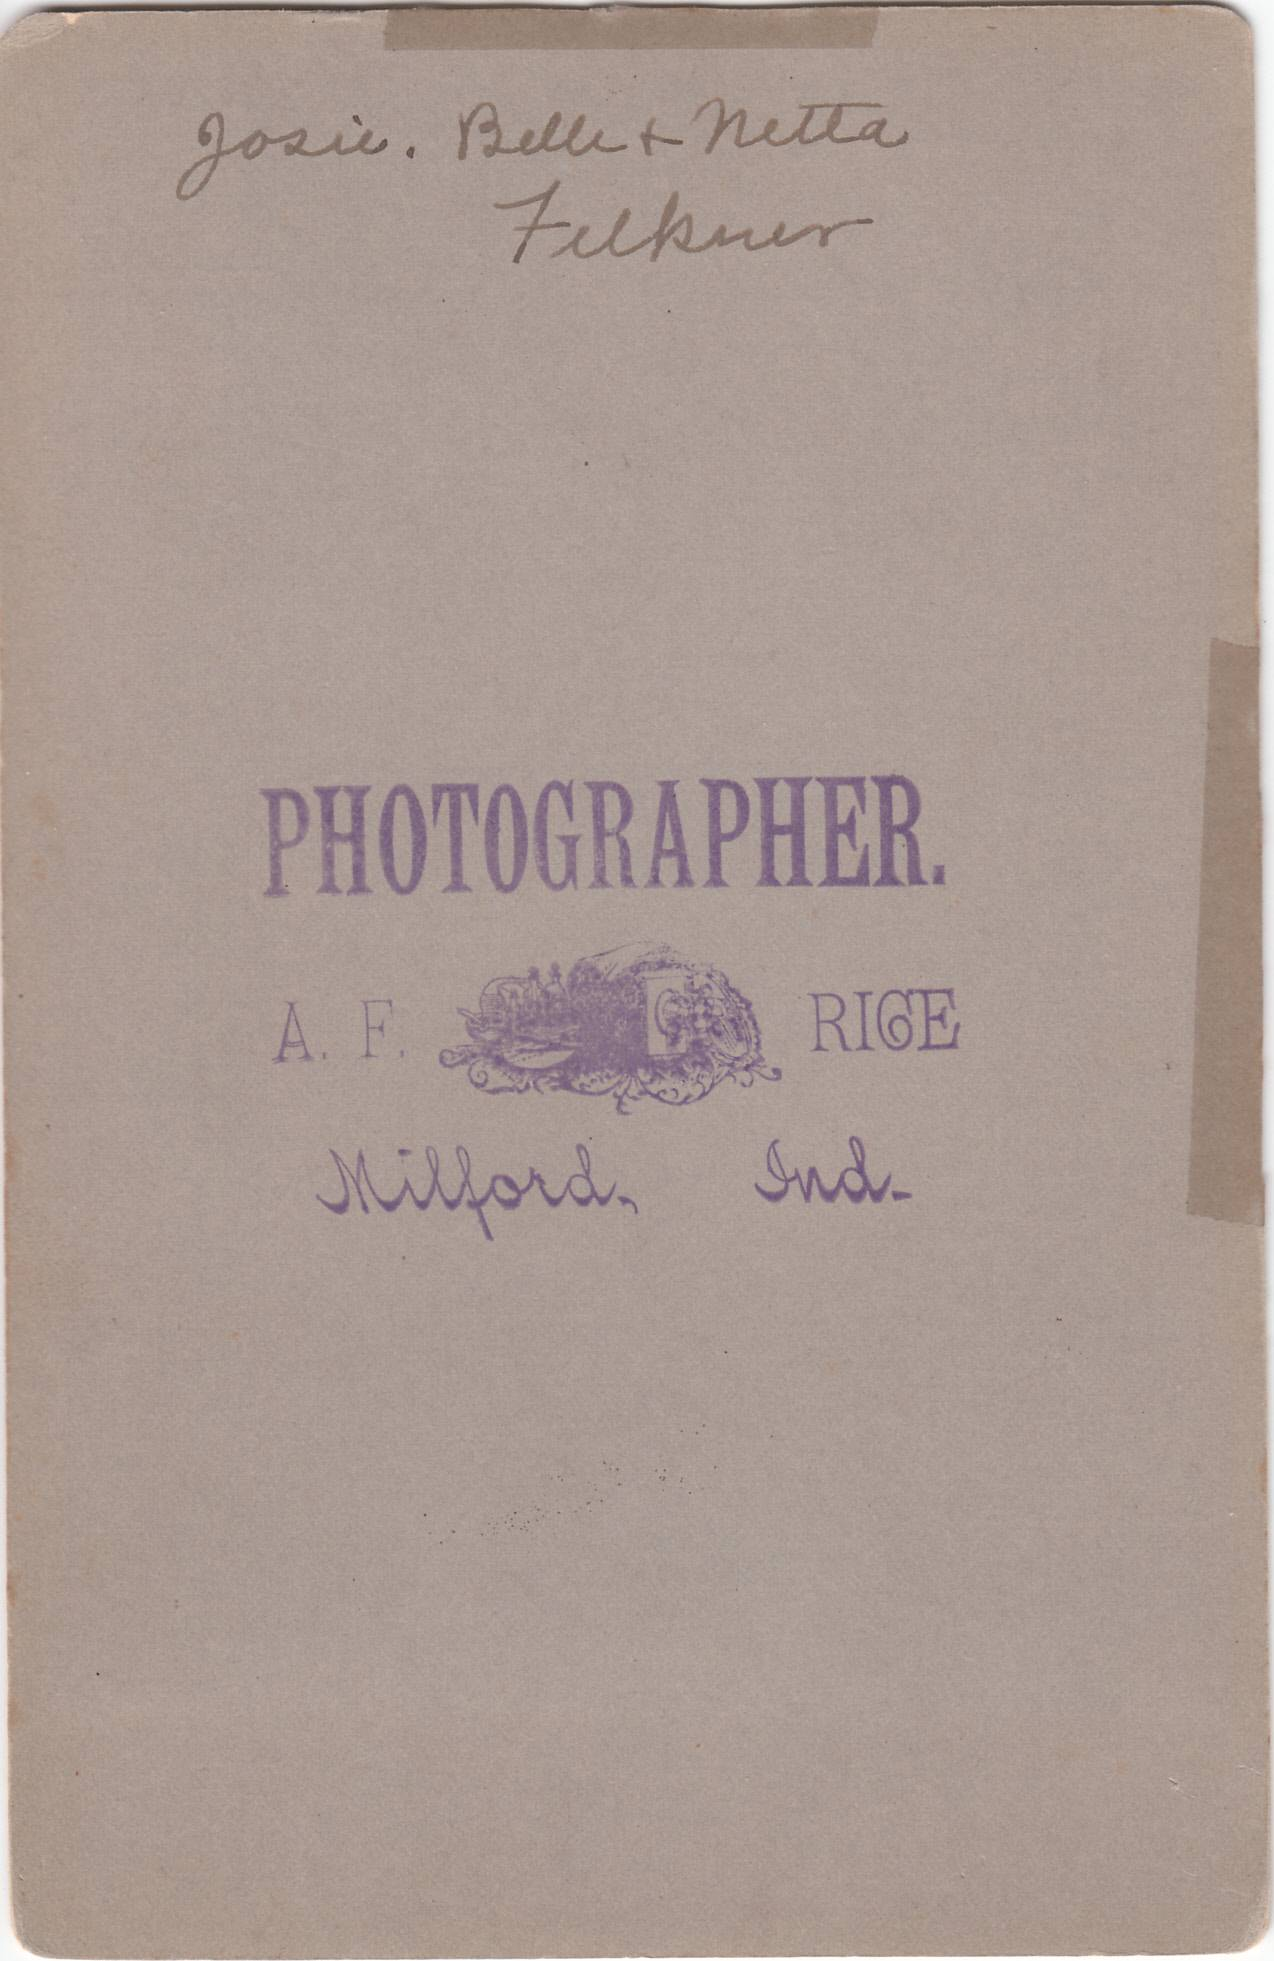 A. F. Rice, photographer of Milford, Indiana - back